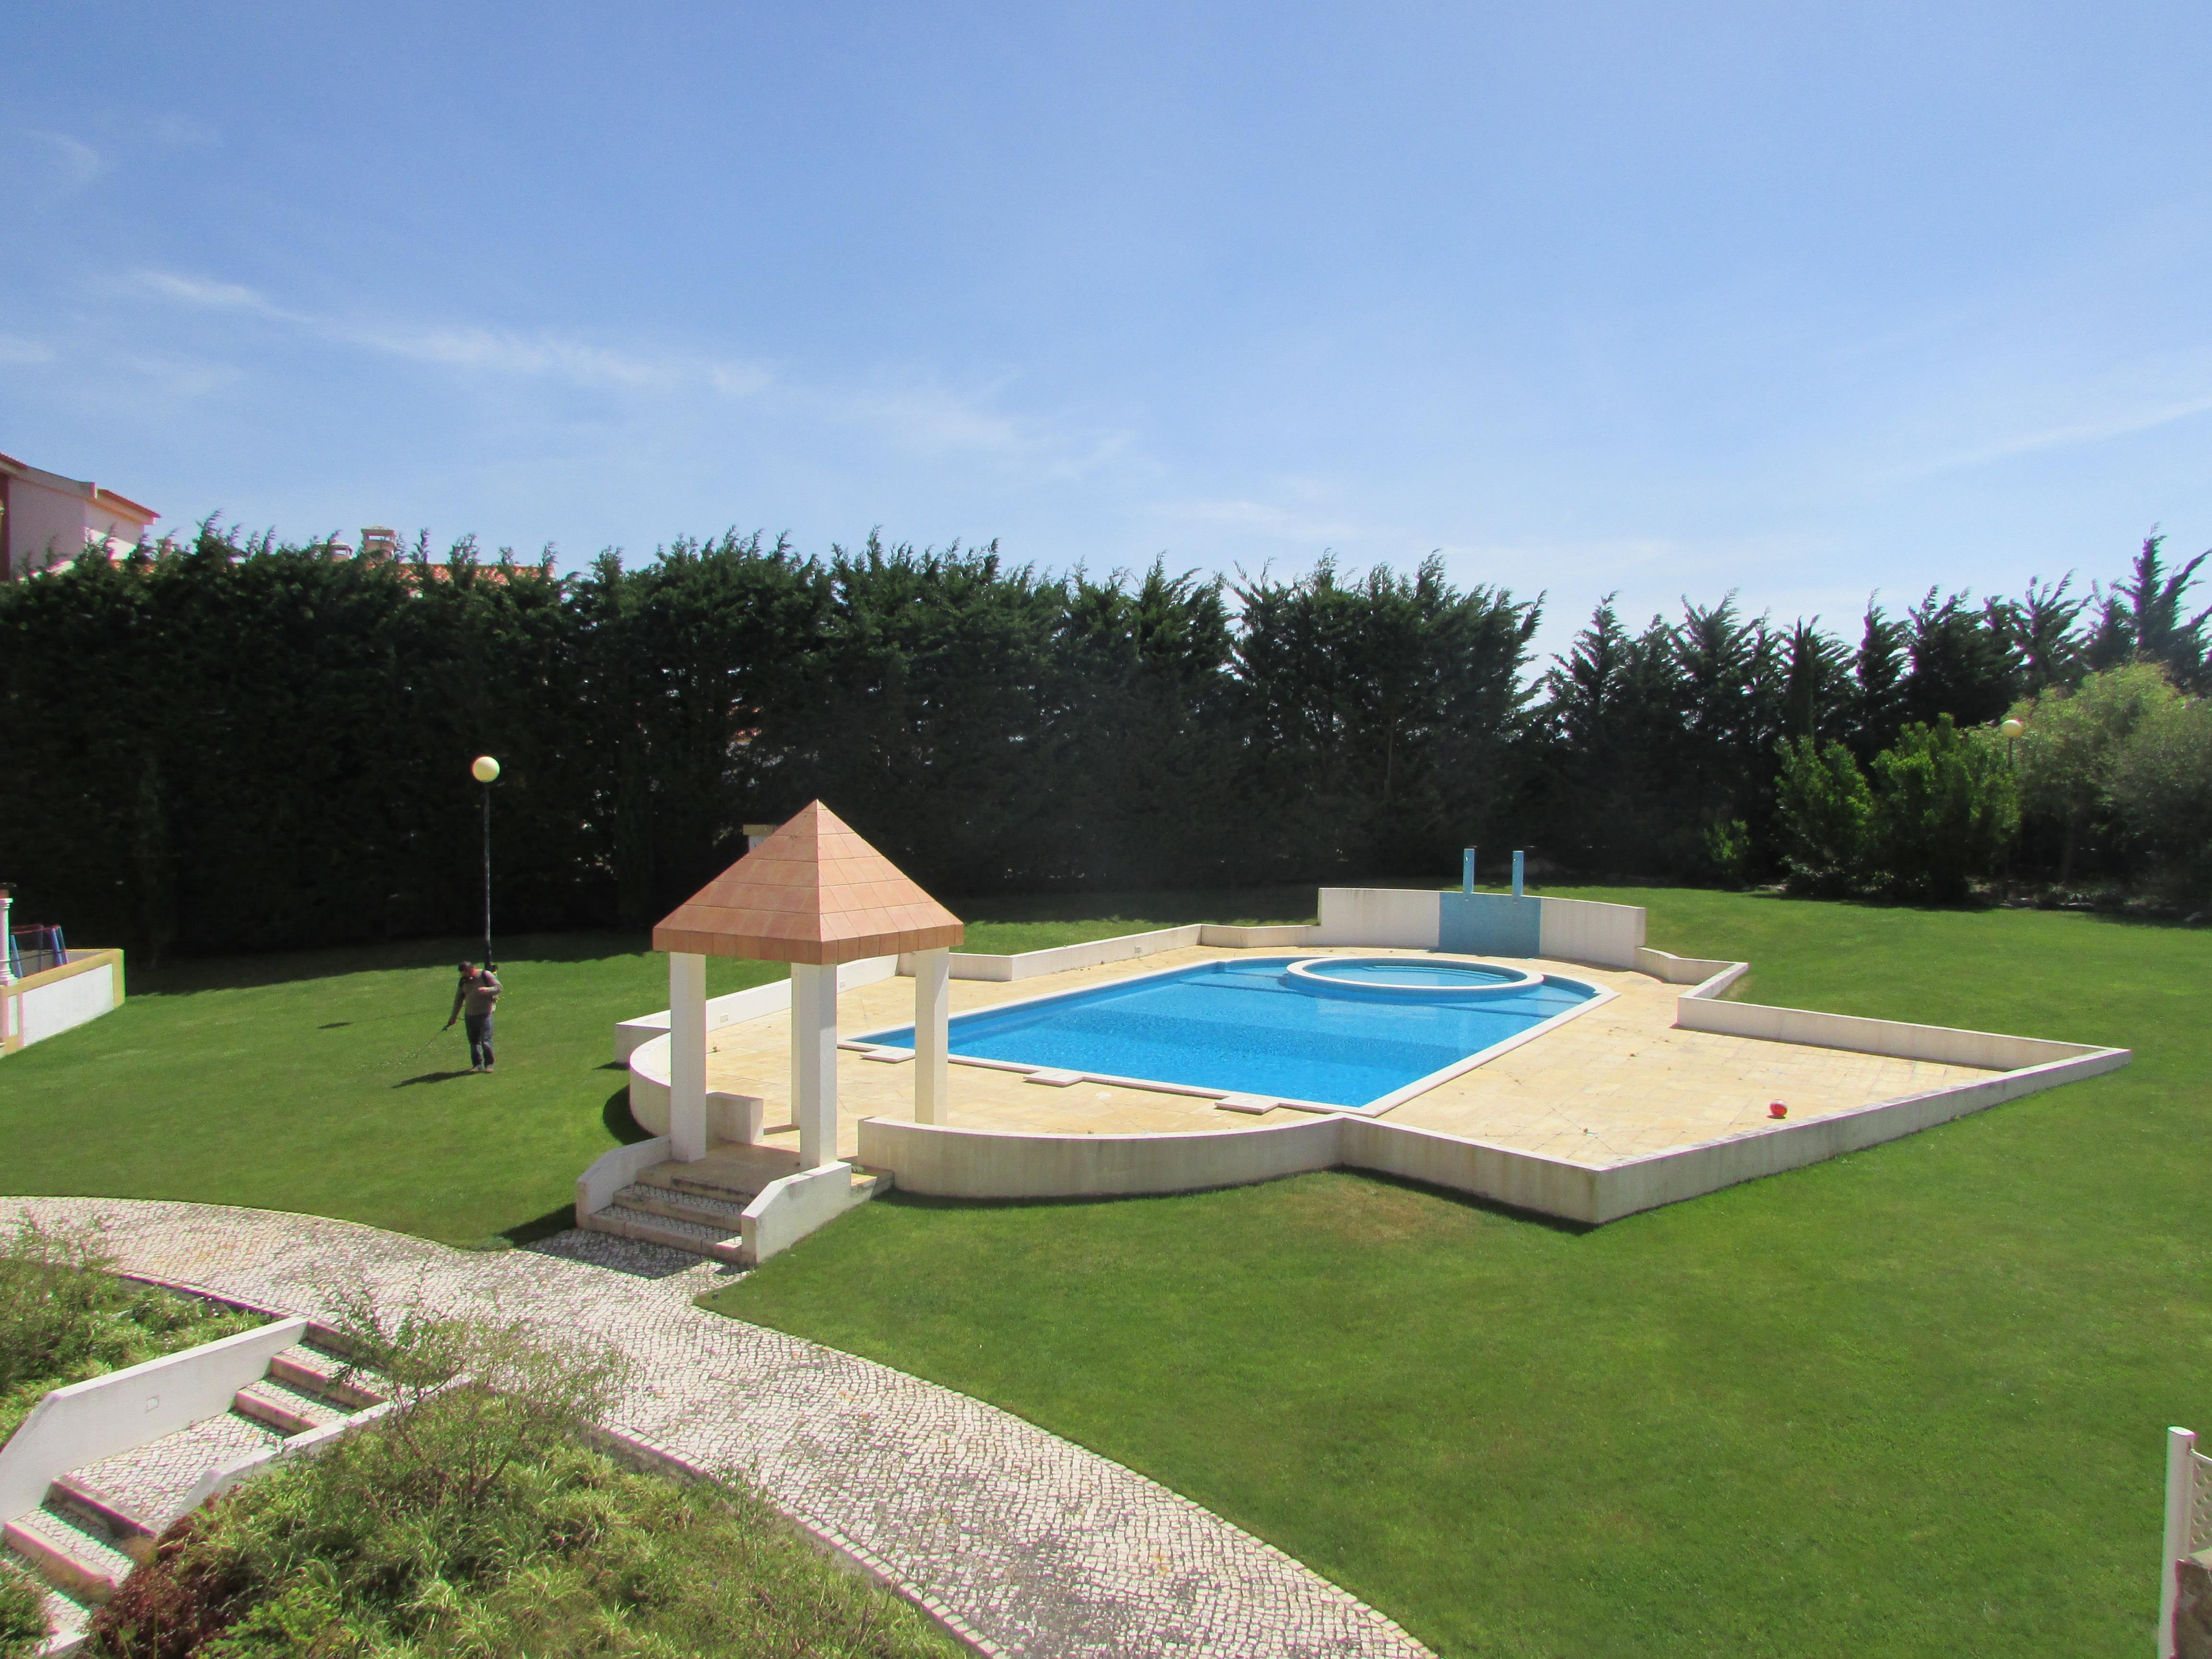 Apartment for Sale at Flat, 3 bedrooms, for Sale Sintra, Lisboa, 2710-701 Portugal